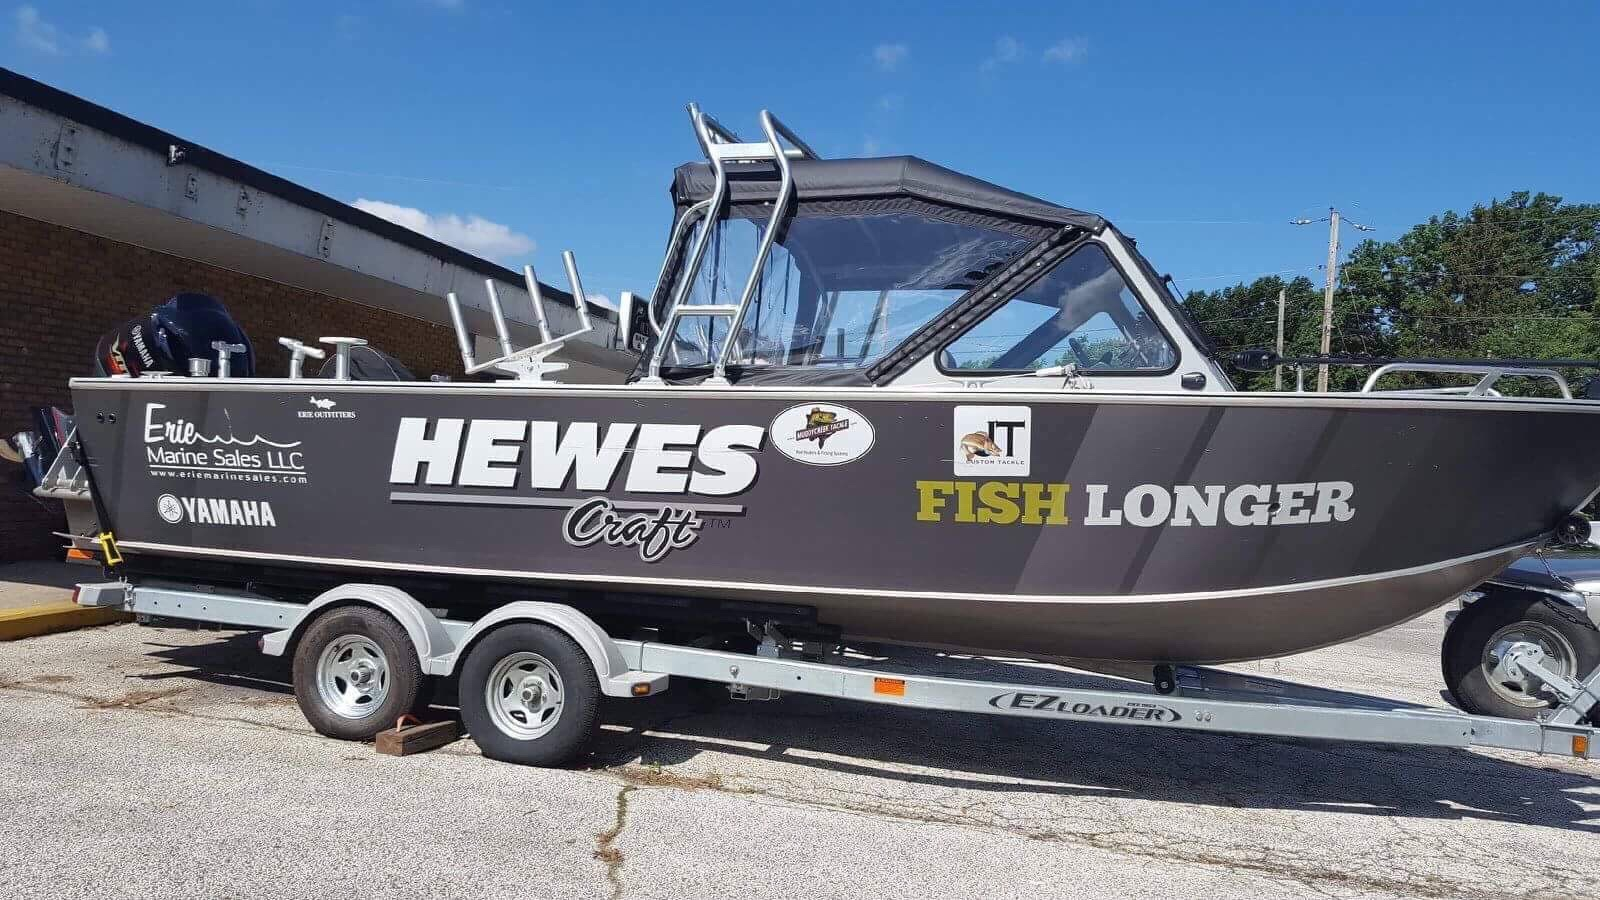 Anybody own a Hewescraft Ocean Pro 220? - This Old Boat